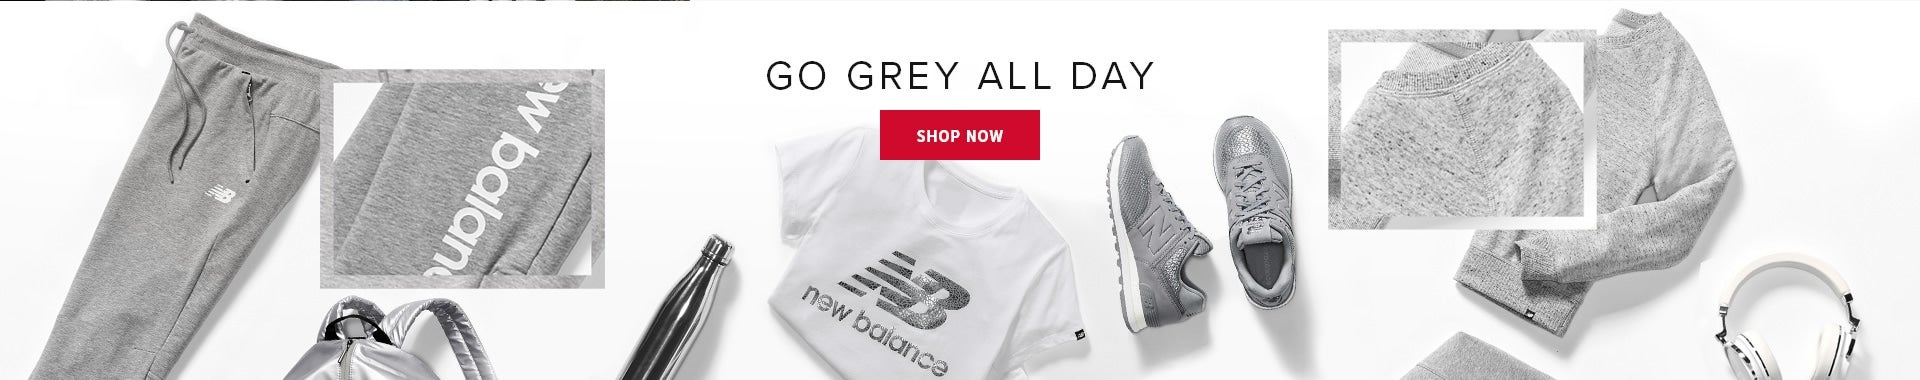 GO GREY ALL DAY